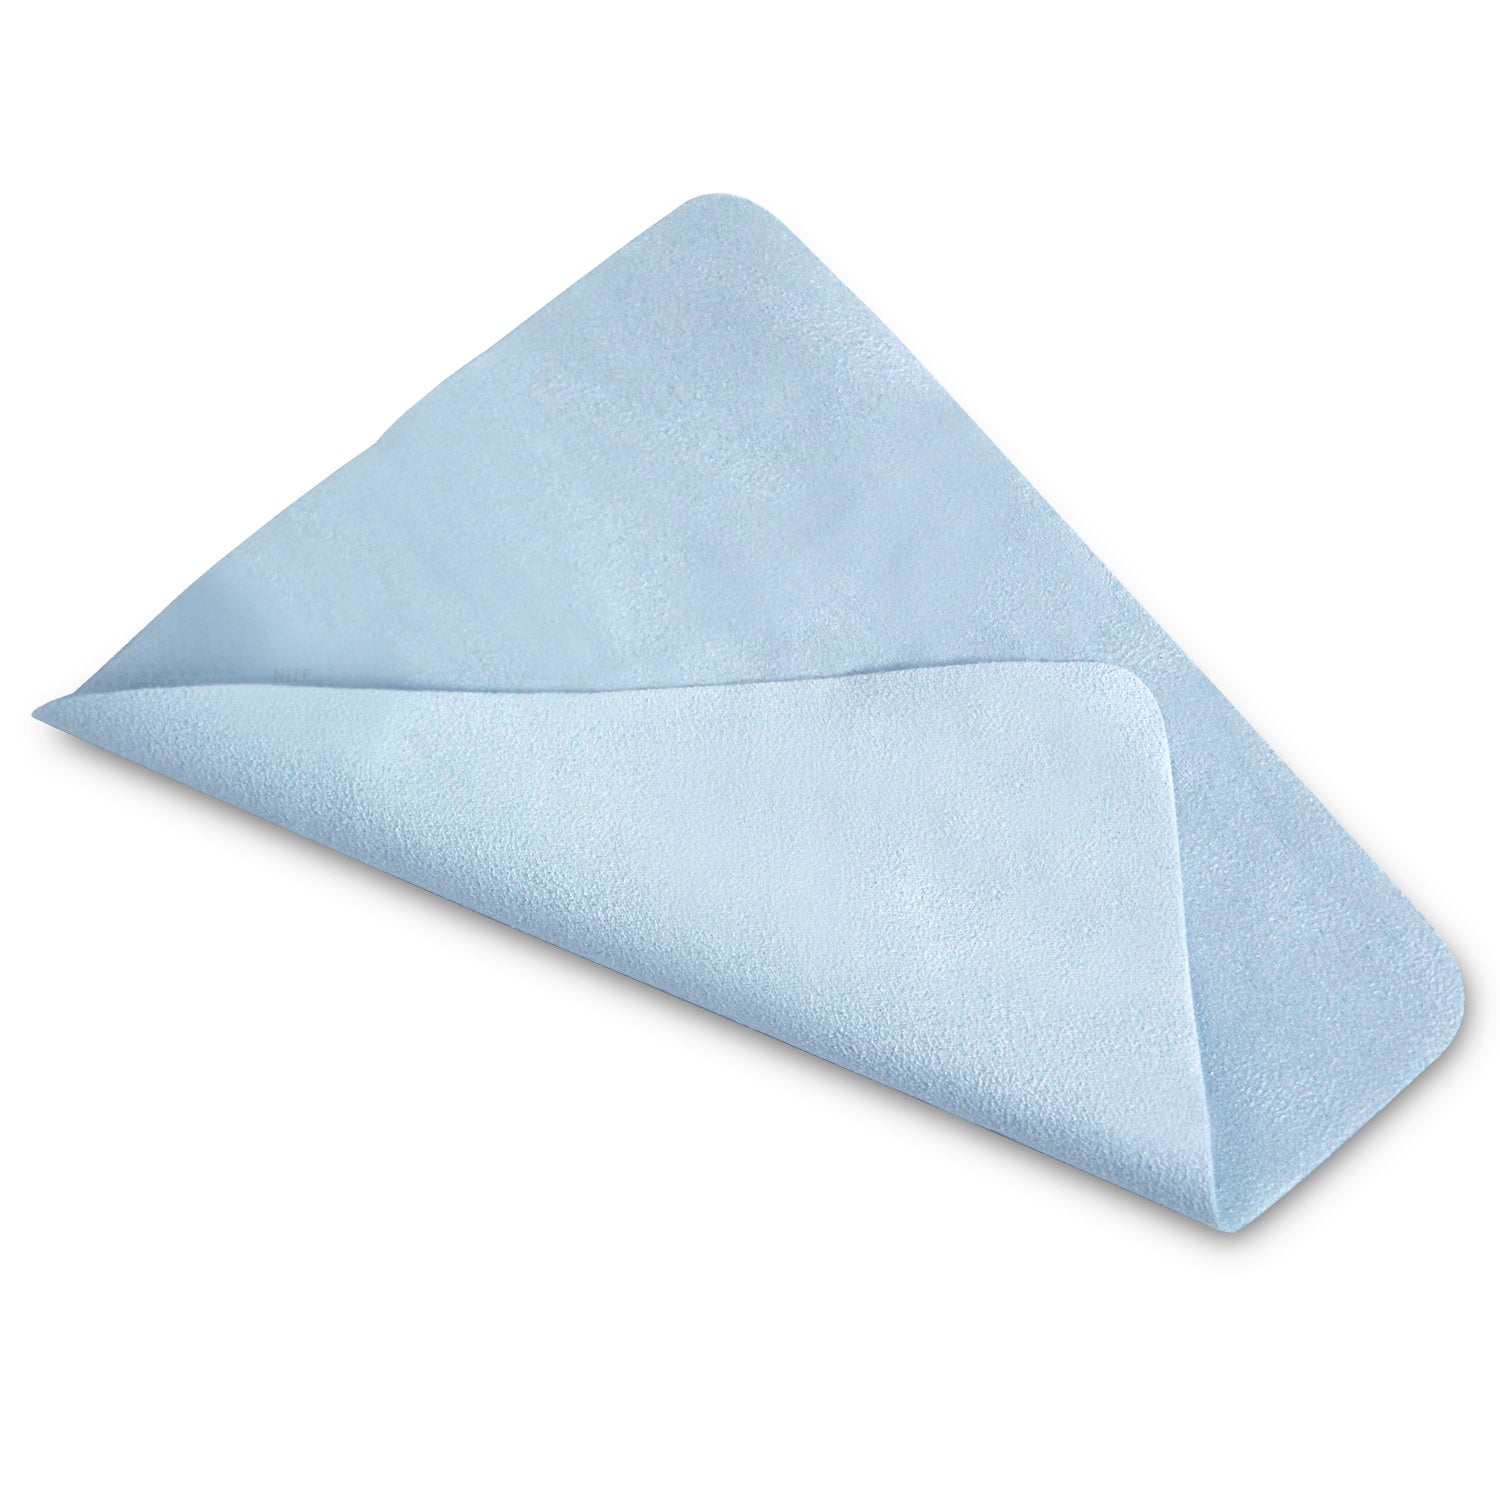 #CLN-237 Microfiber cleaning cloth